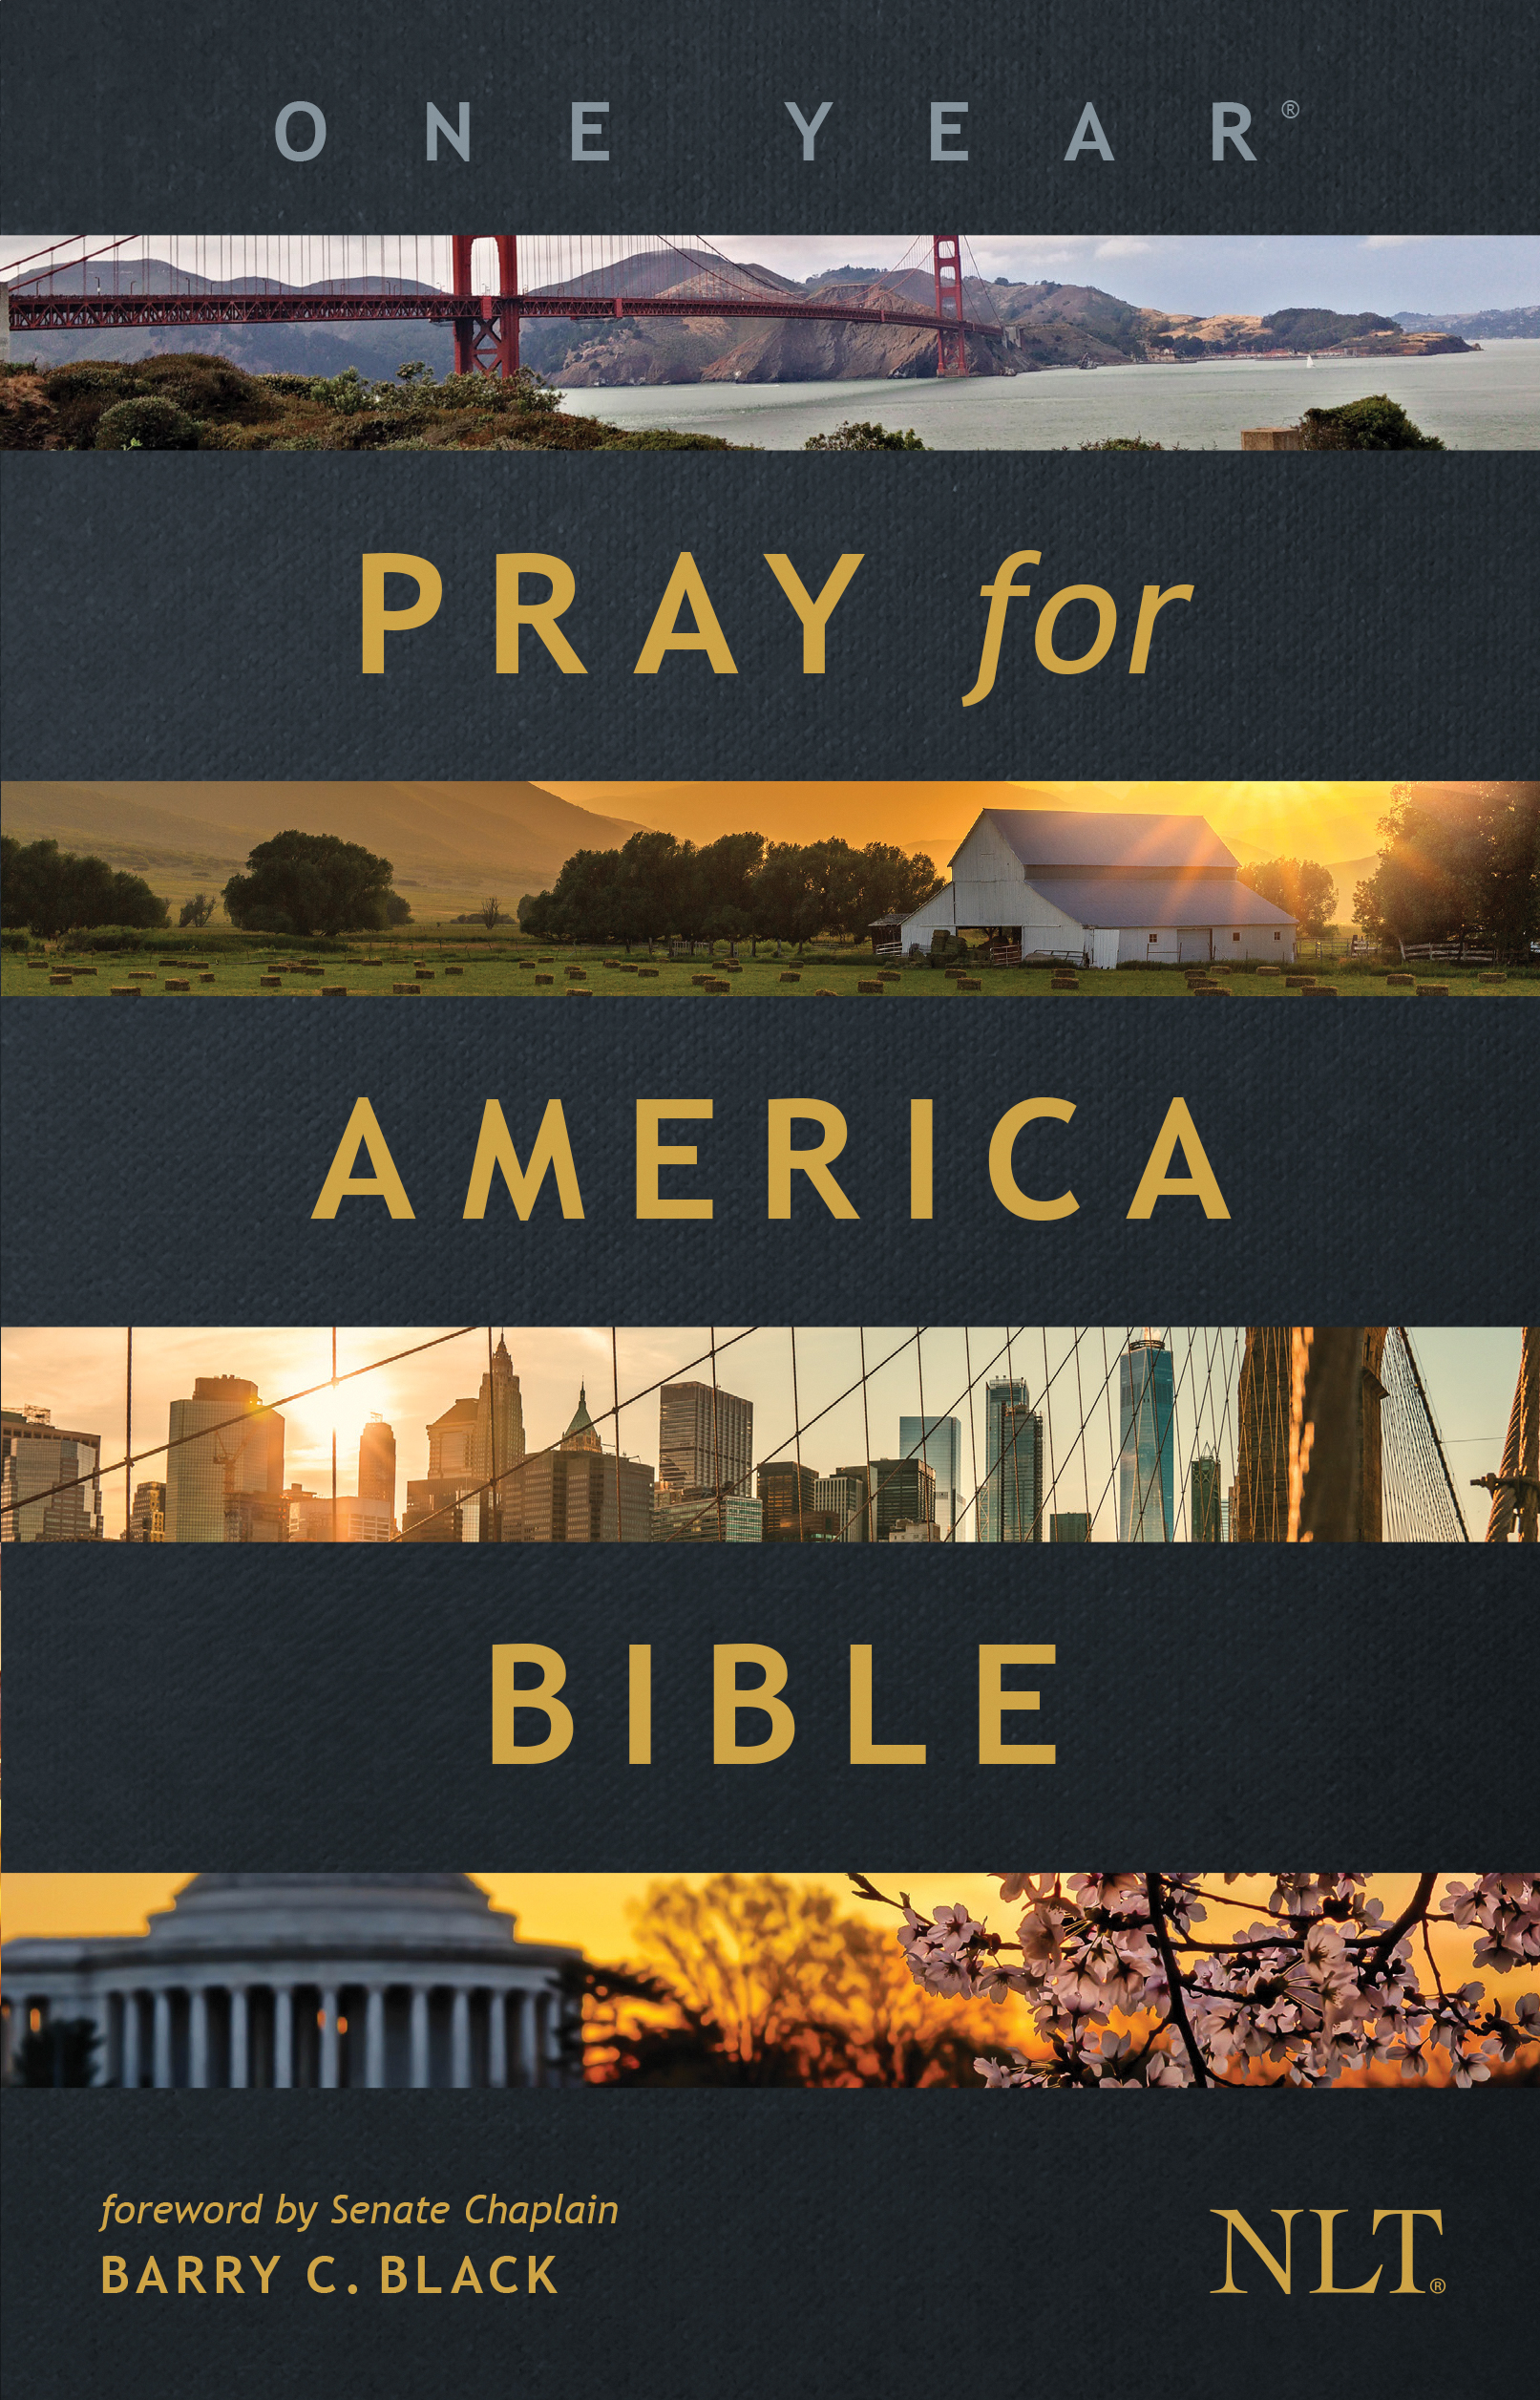 one year pray for america bible nlt cover image